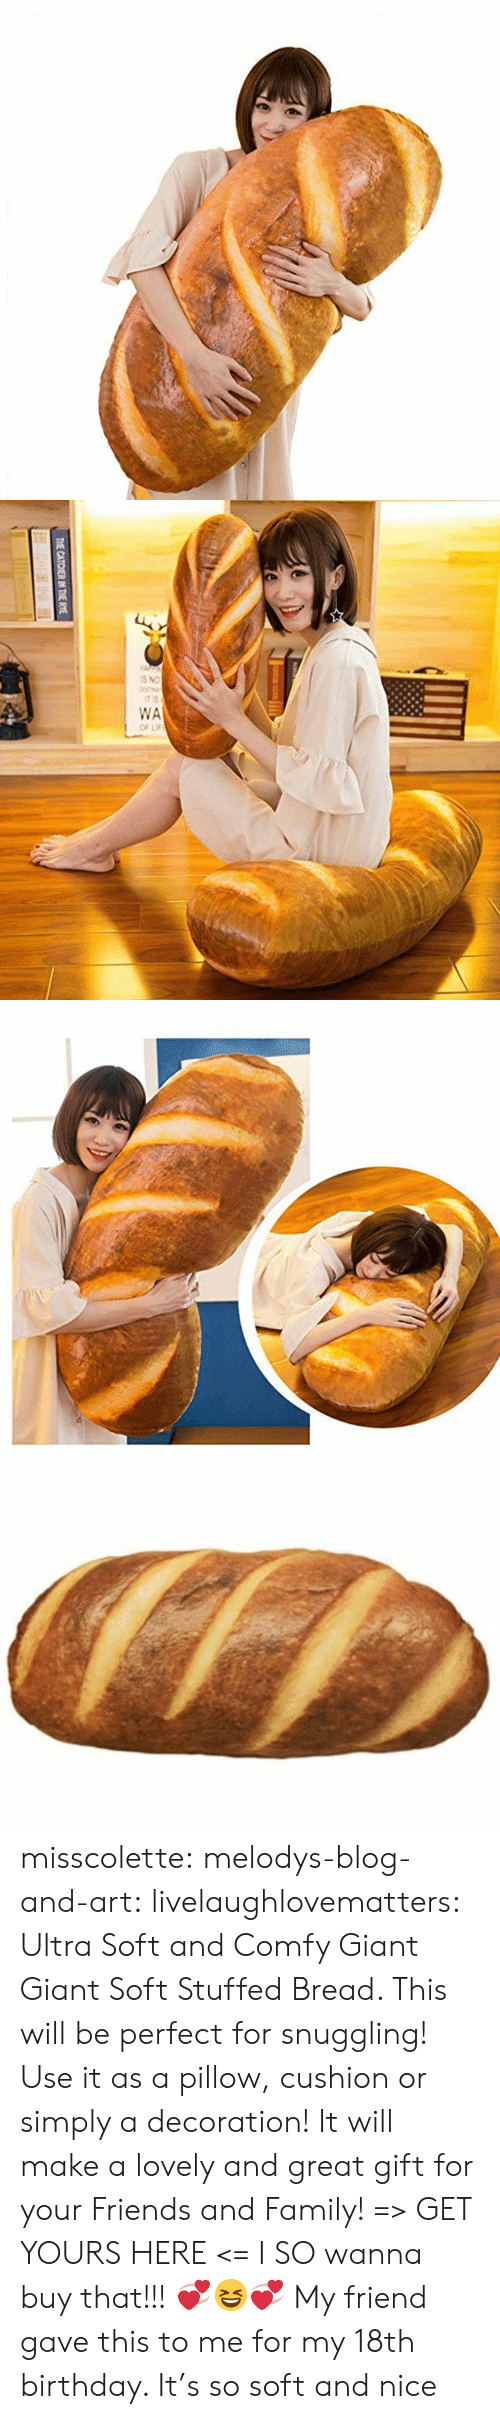 Decoration: THE CATCHER IN THE RYE misscolette:  melodys-blog-and-art: livelaughlovematters:  Ultra Soft and Comfy Giant Giant Soft Stuffed Bread. This will be perfect for snuggling! Use it as a pillow, cushion or simply a decoration! It will make a lovely and great gift for your Friends and Family! => GET YOURS HERE <=   I SO wanna buy that!!! 💞😆💞   My friend gave this to me for my 18th birthday. It's so soft and nice